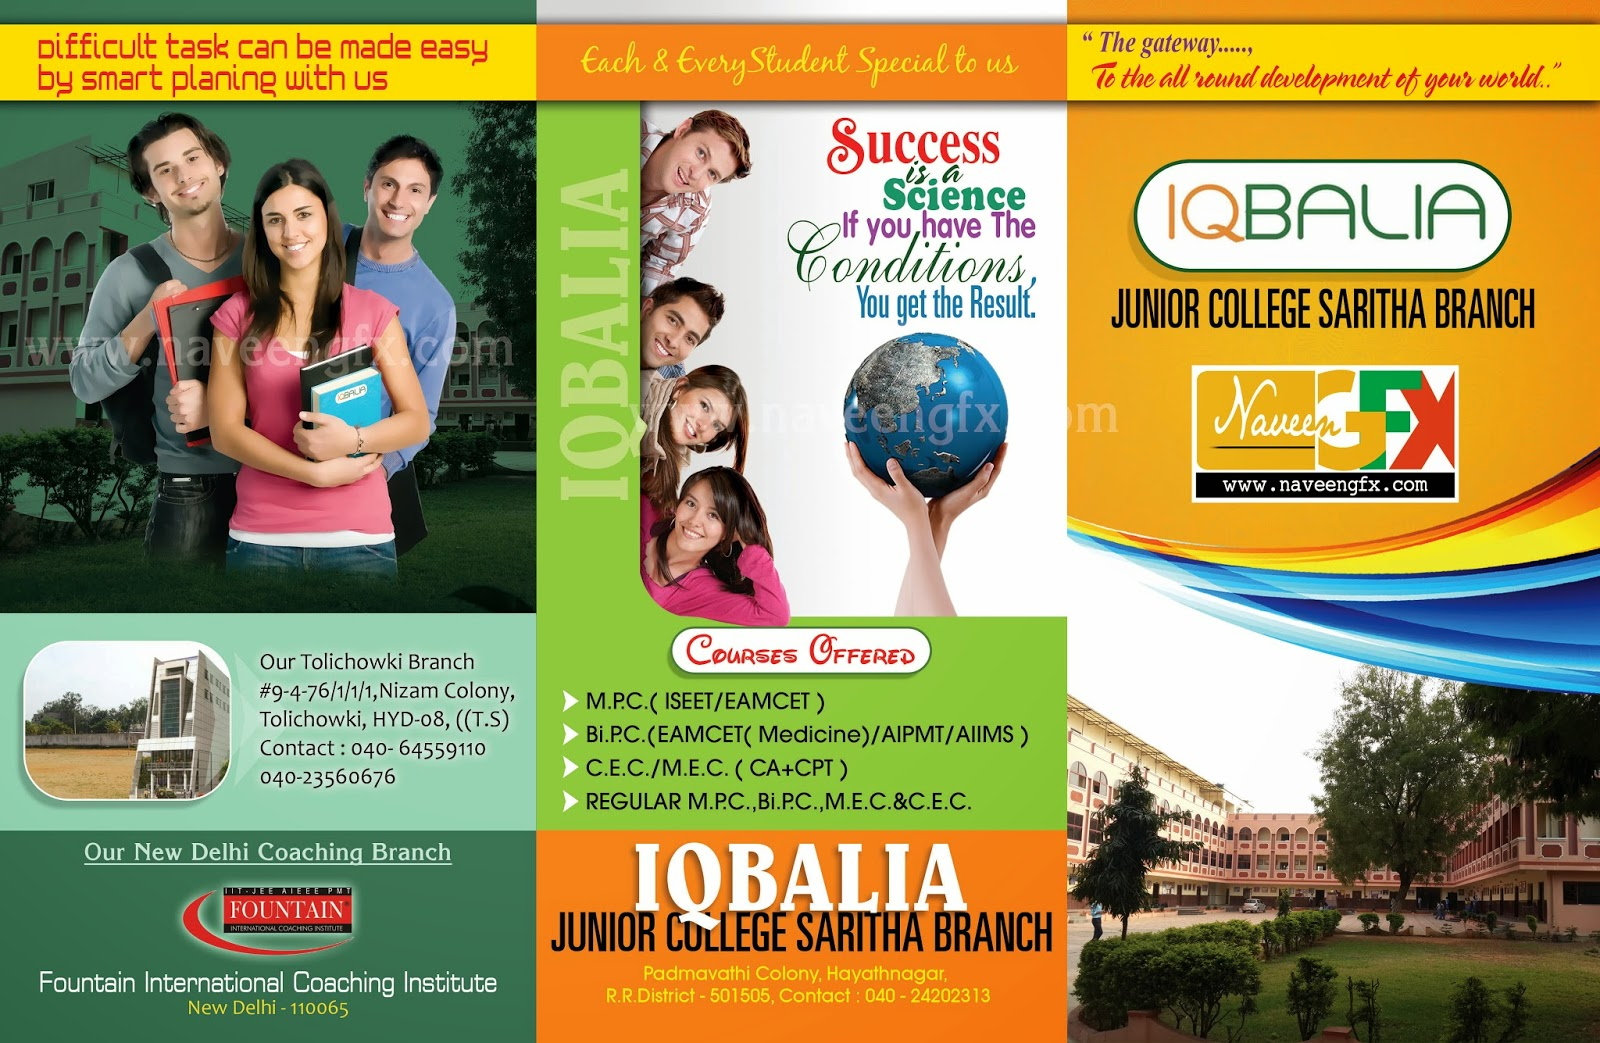 College brochure design psd template free downloads for Brochure design for training institute